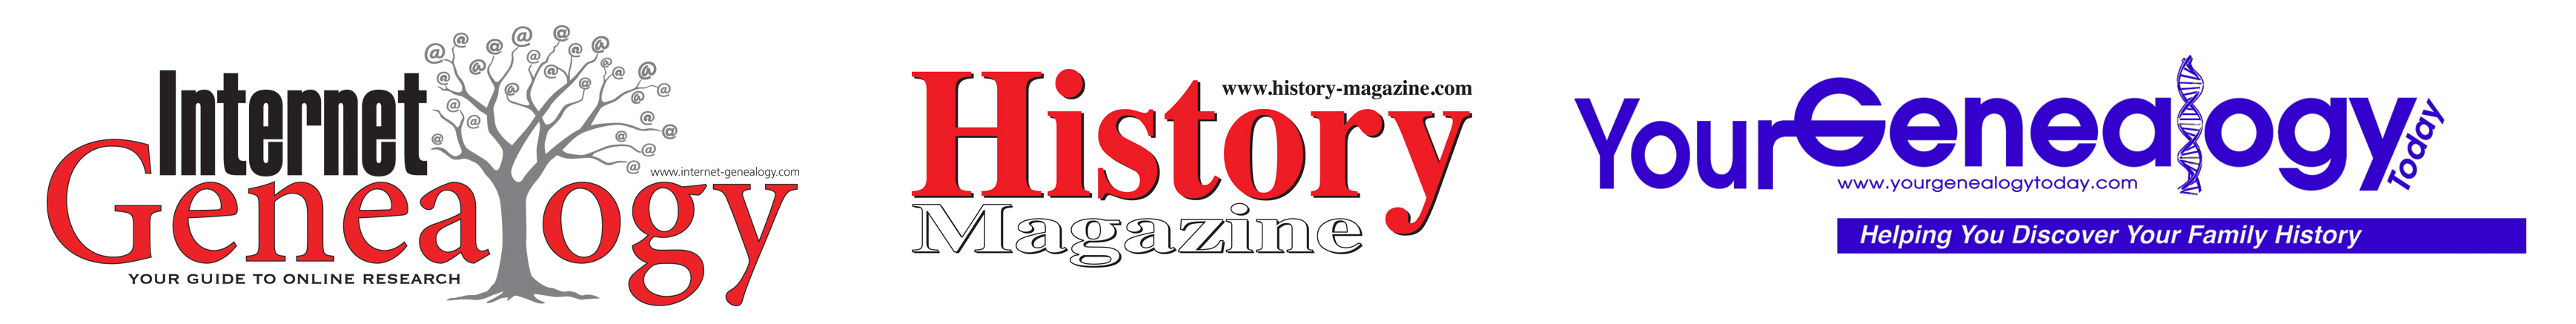 Your Genealogy Today - Internet Genealogy - History Magazine